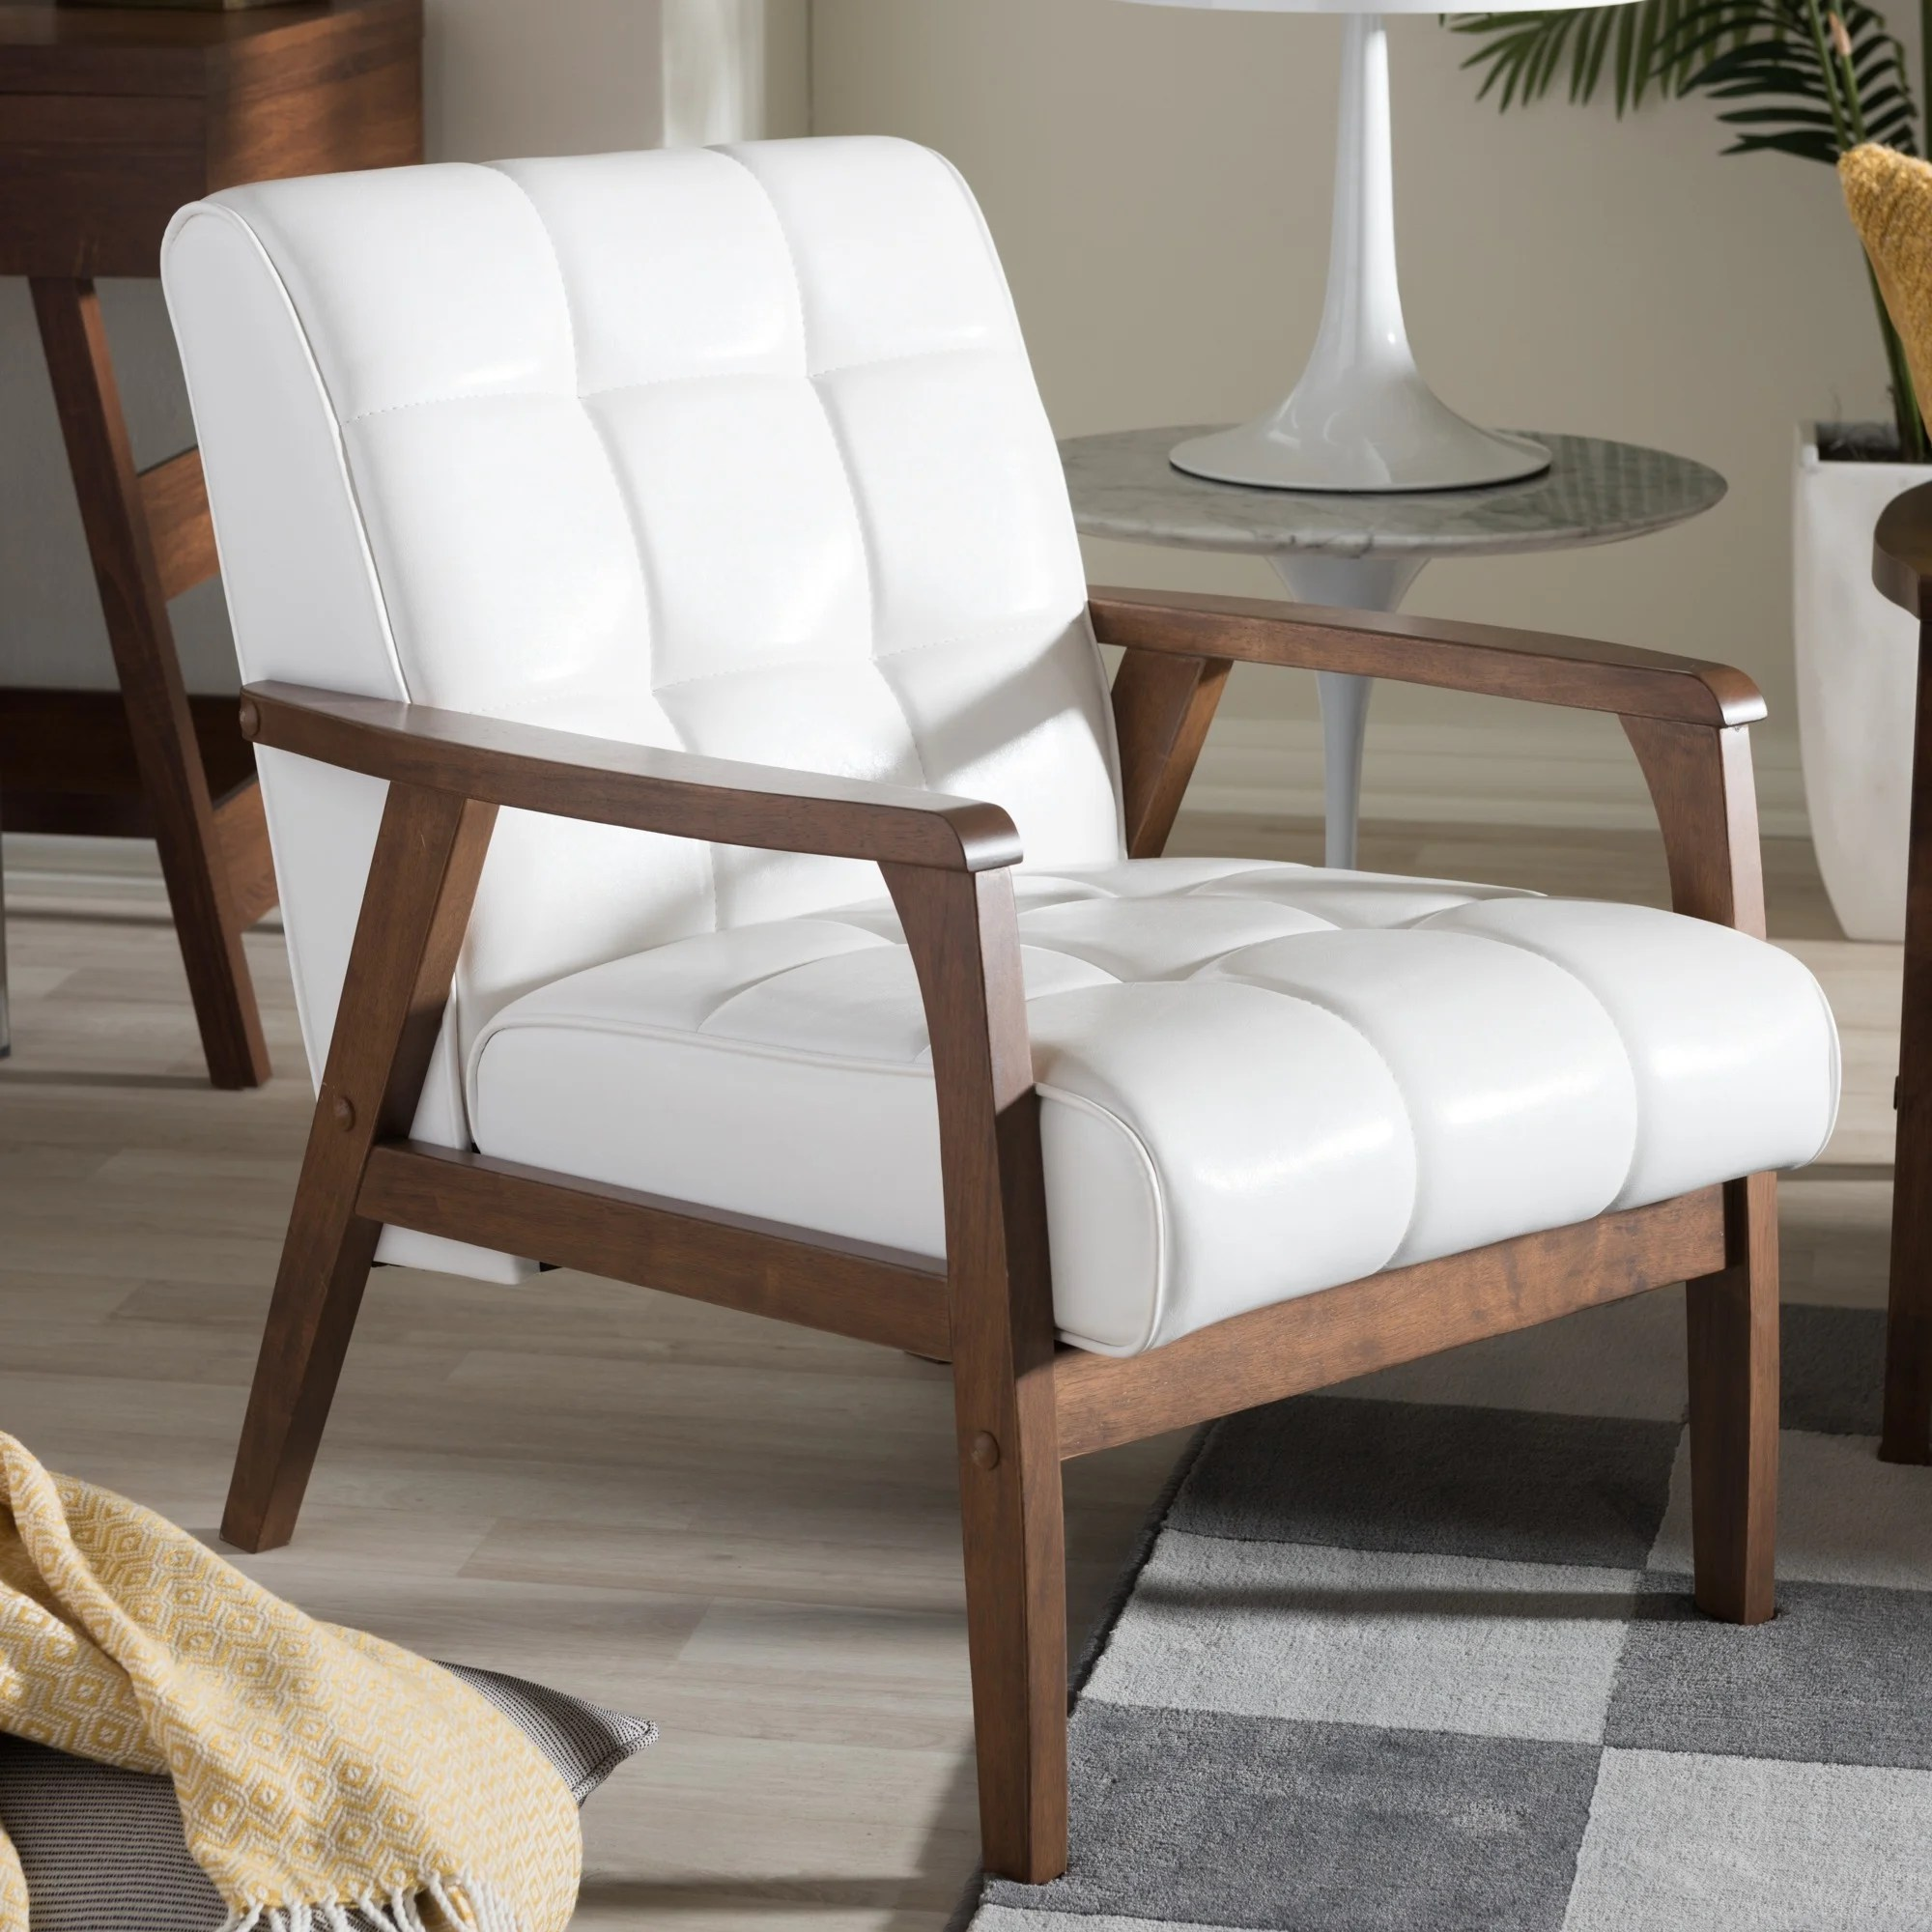 white faux leather chair universal covers for sale shop mid century by baxton studio